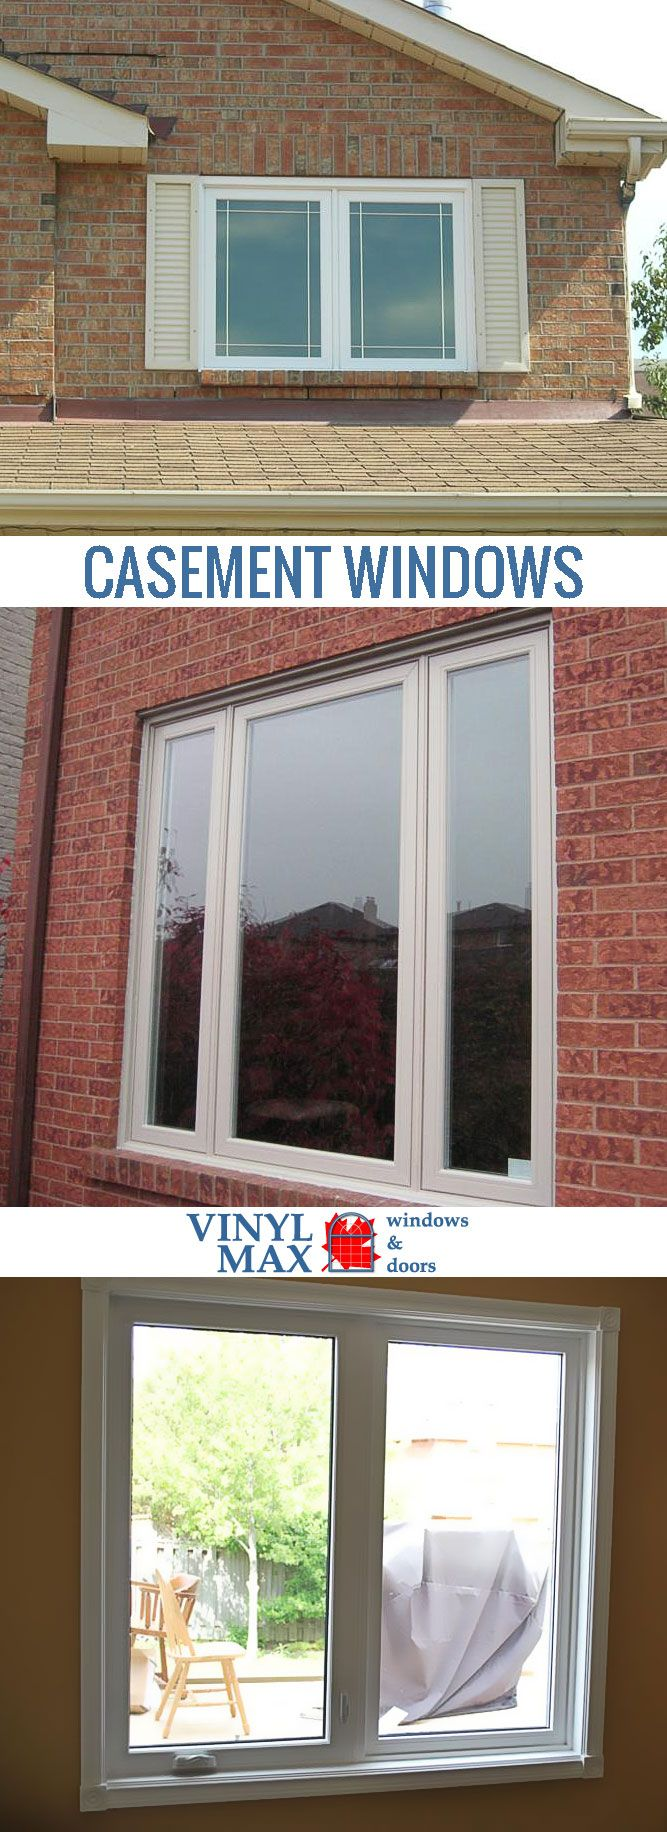 17 best images about windows replacement edmonton on pinterest maybe it s time to install our casement windows vinyl max windows and doors provides functional and durable casement windows that shall brighten